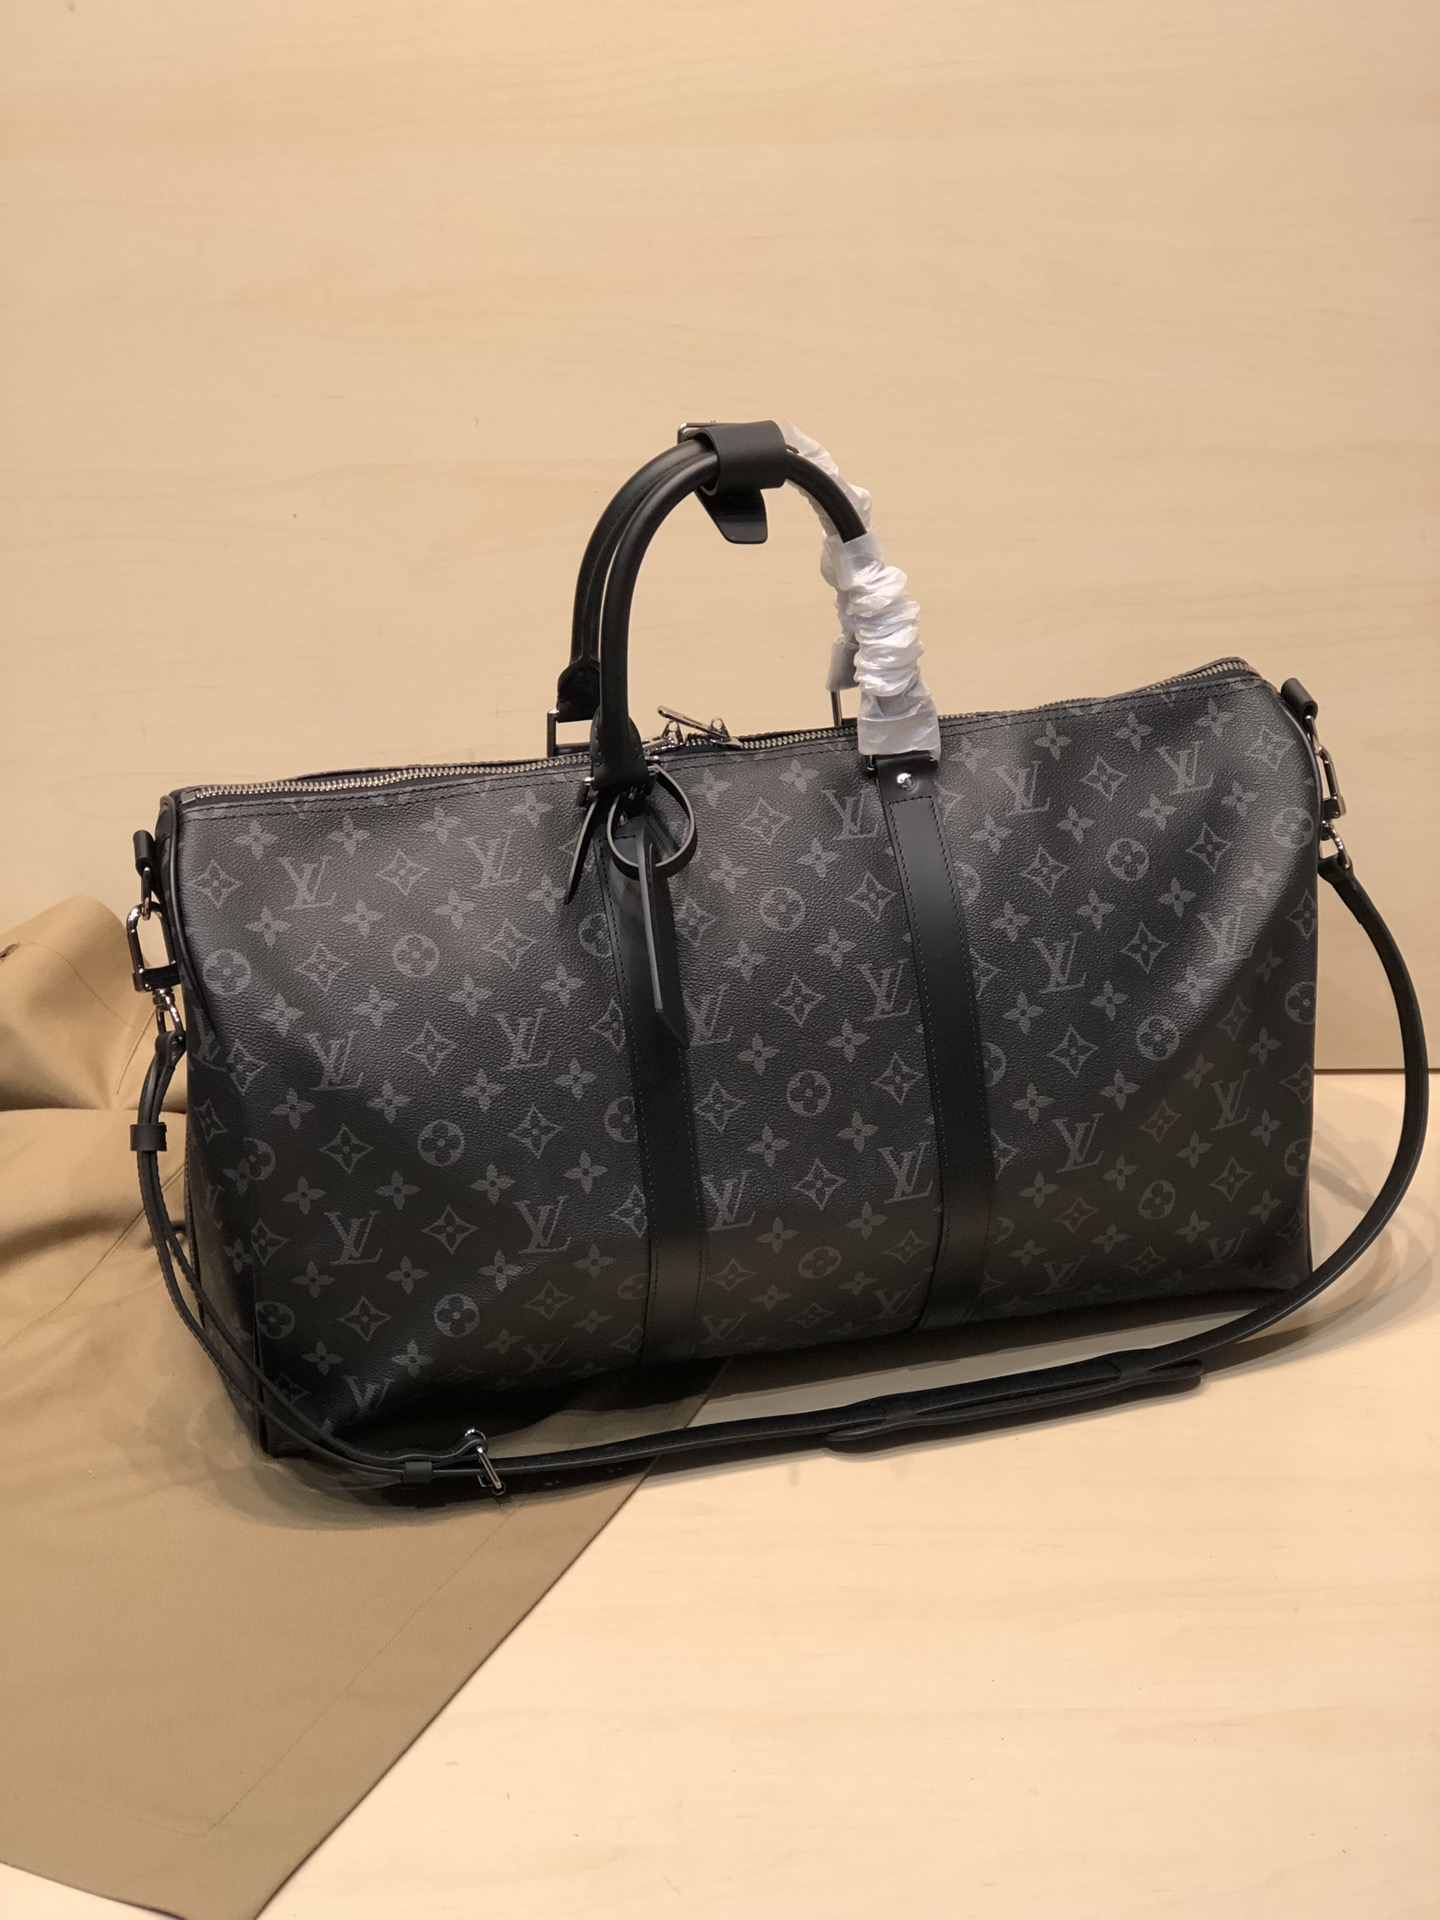 Replica Louis Vuitton Keepall Bandouliere-2 45 50 55